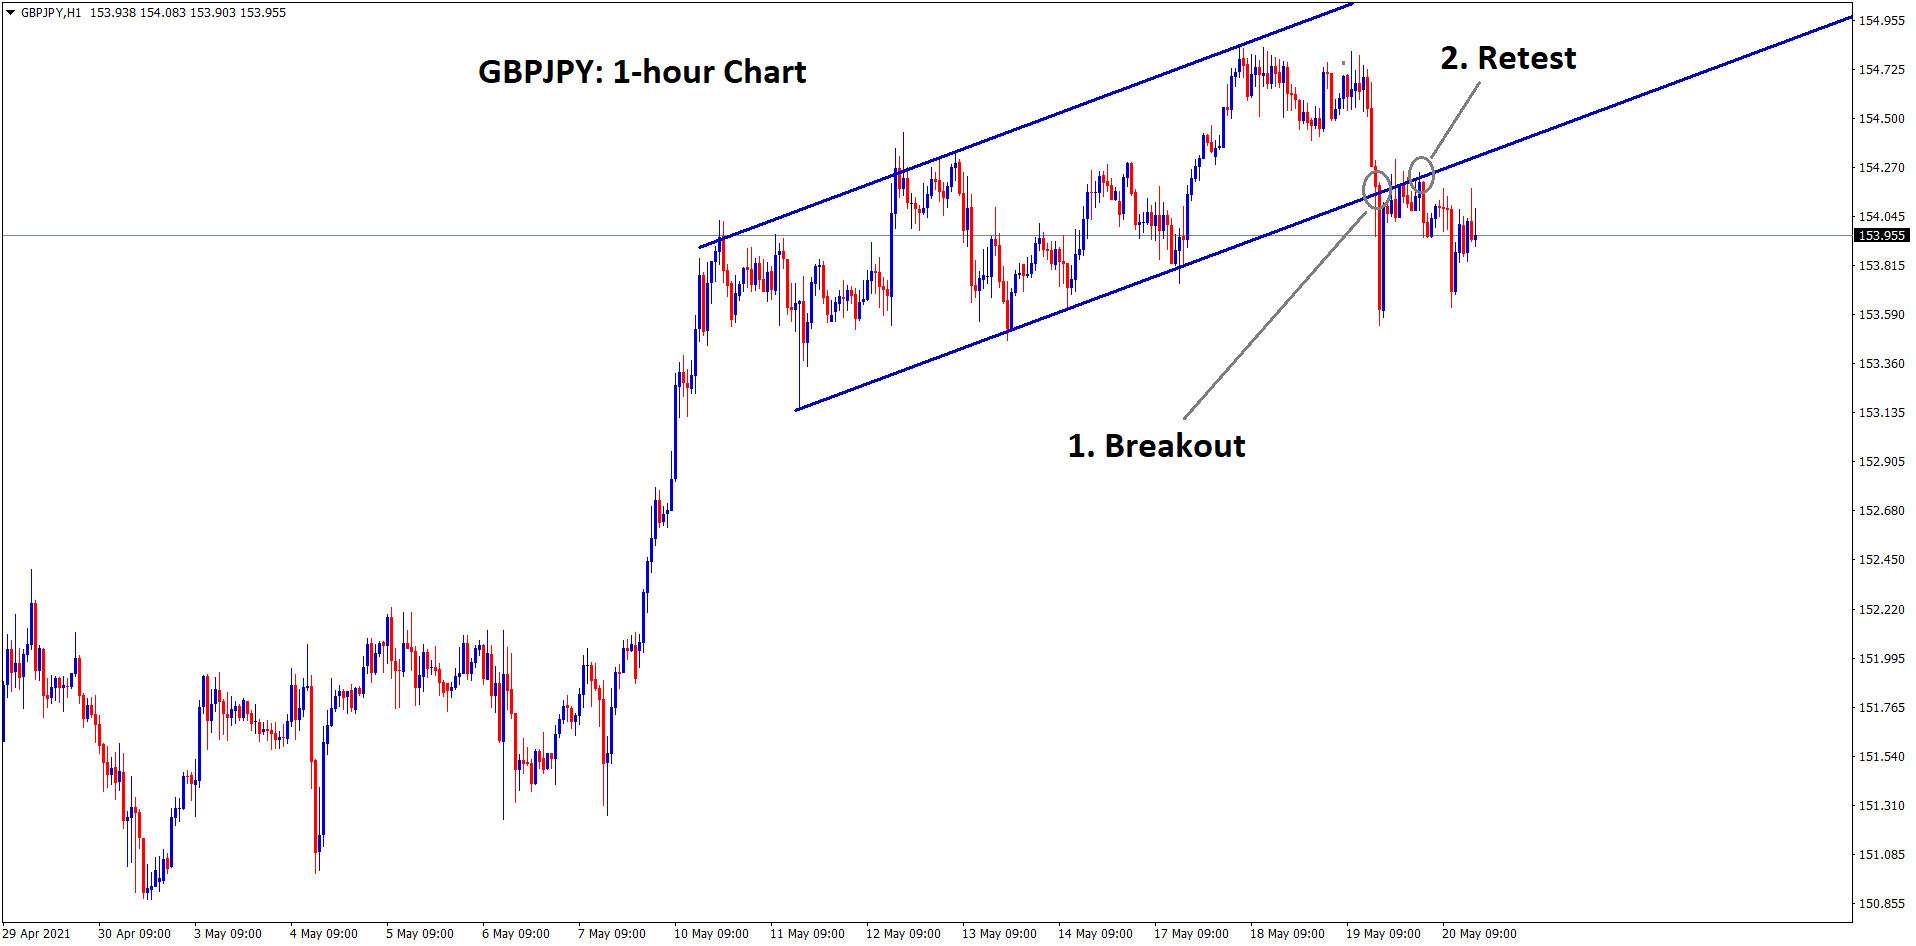 GBPJPY breakout and retest scenario at the ascending channel range.